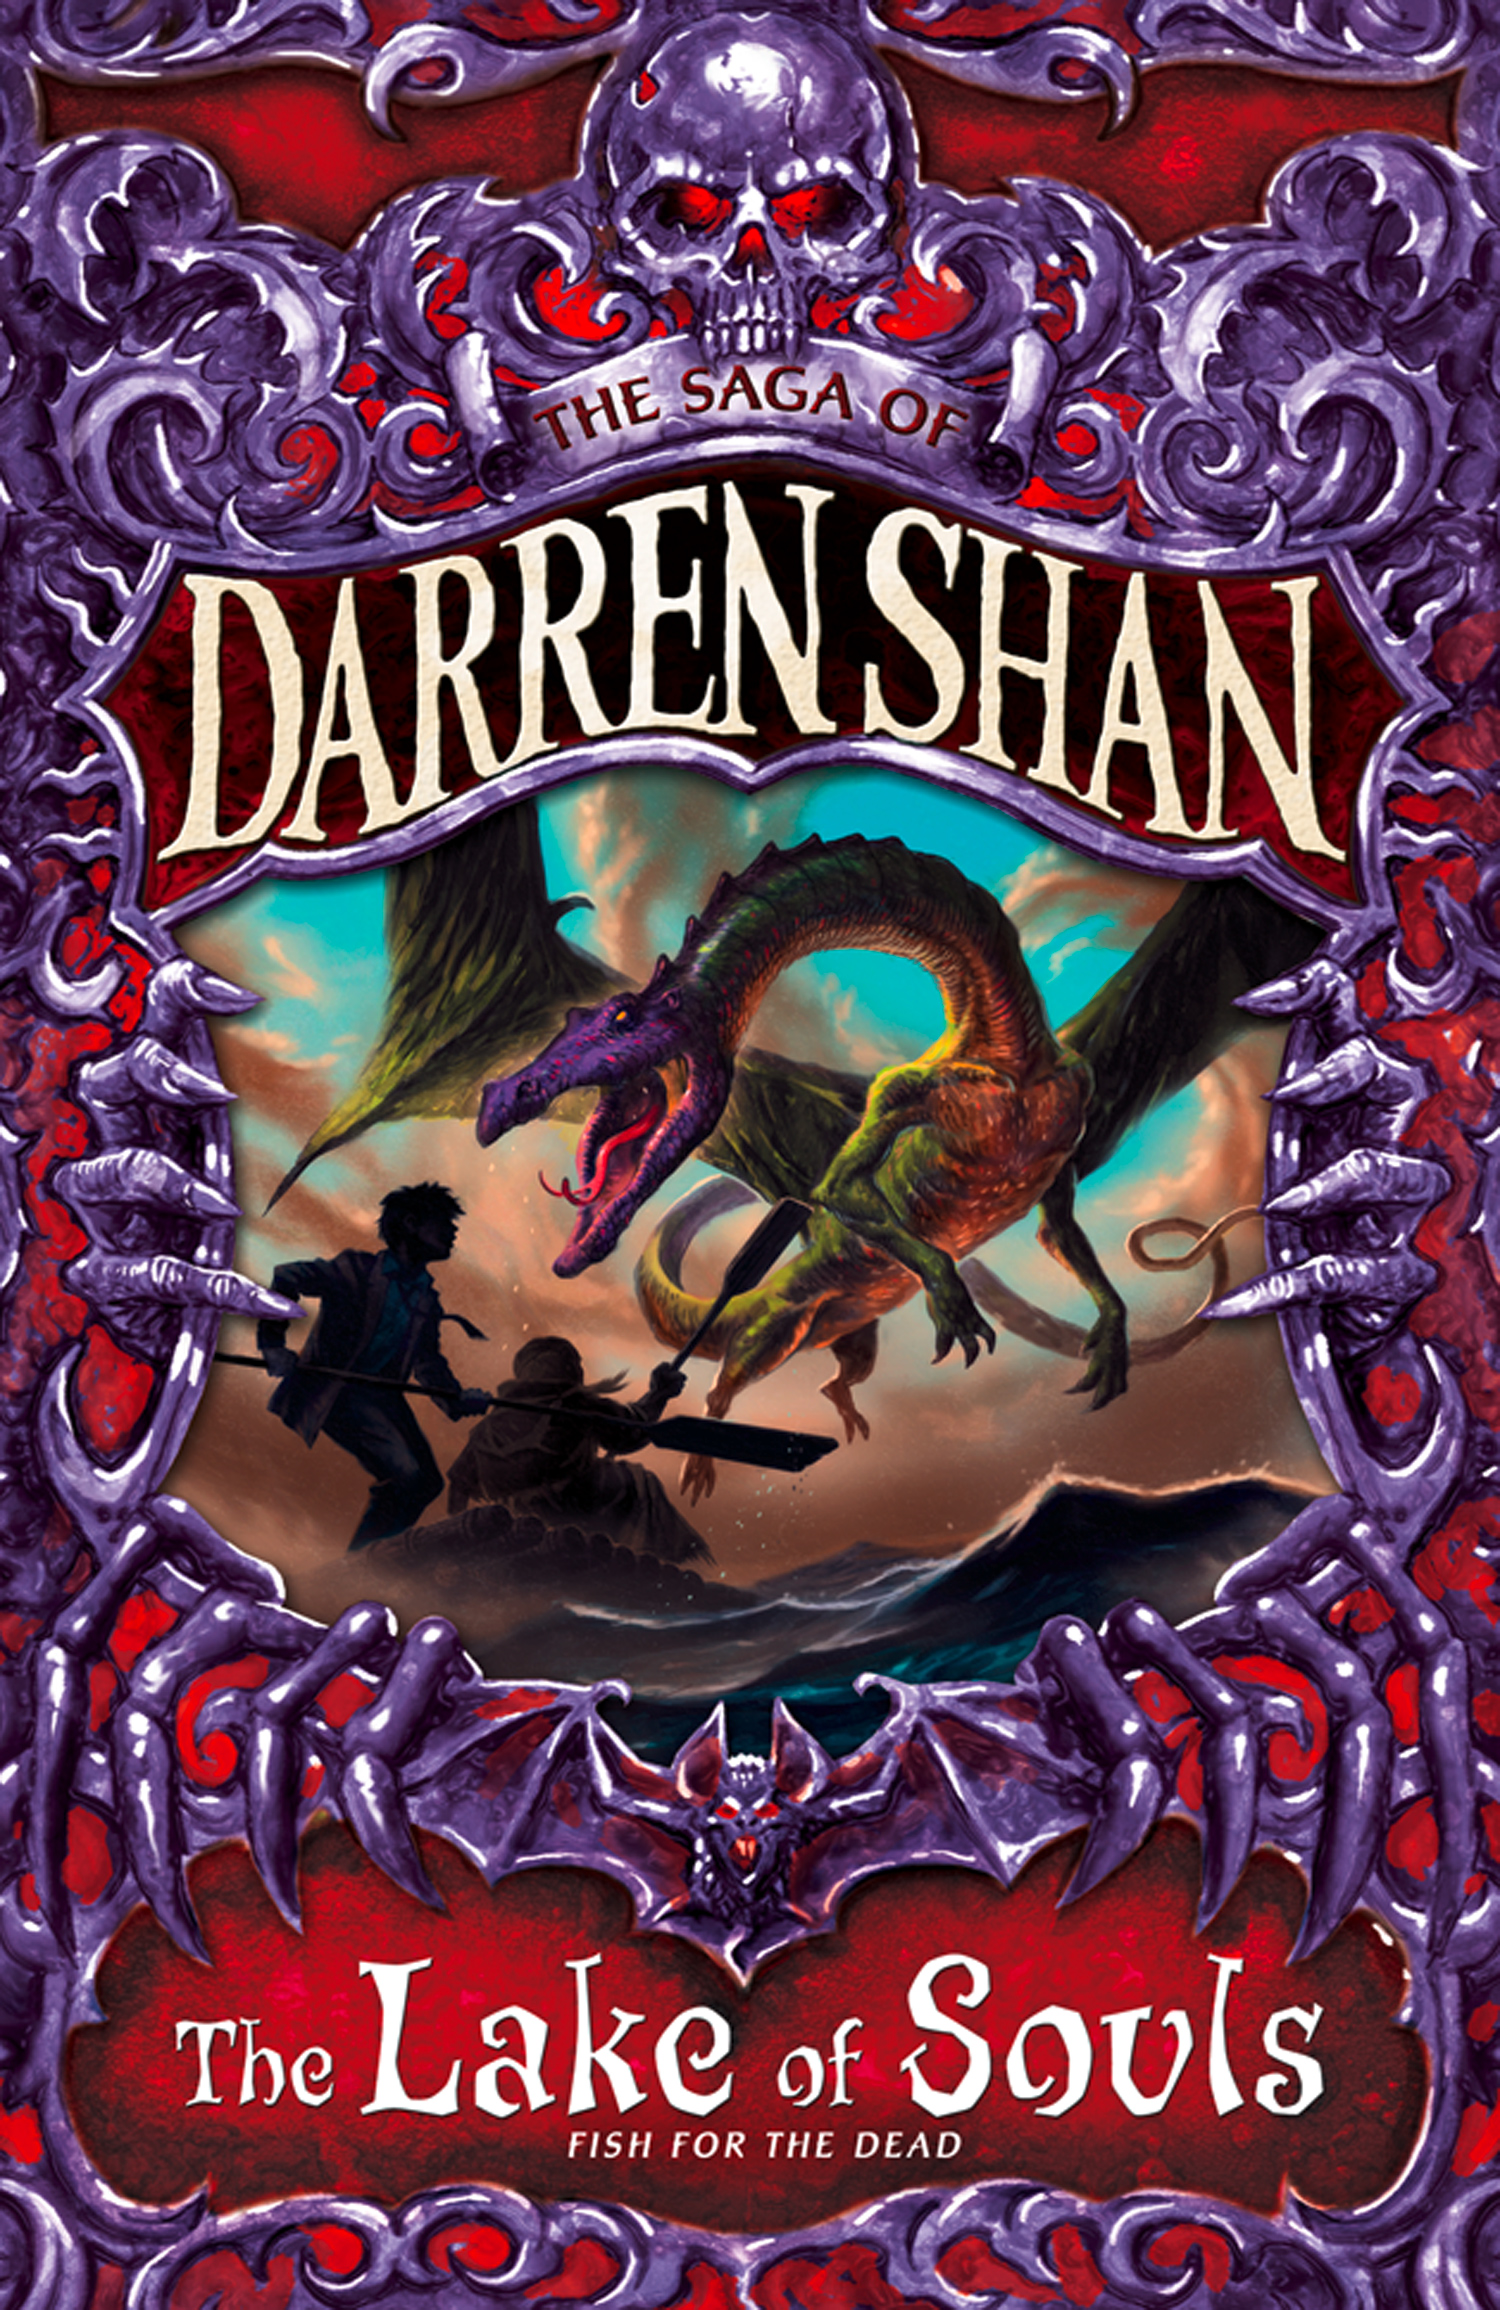 The Lake of Souls (The Saga of Darren Shan,  Book 10)